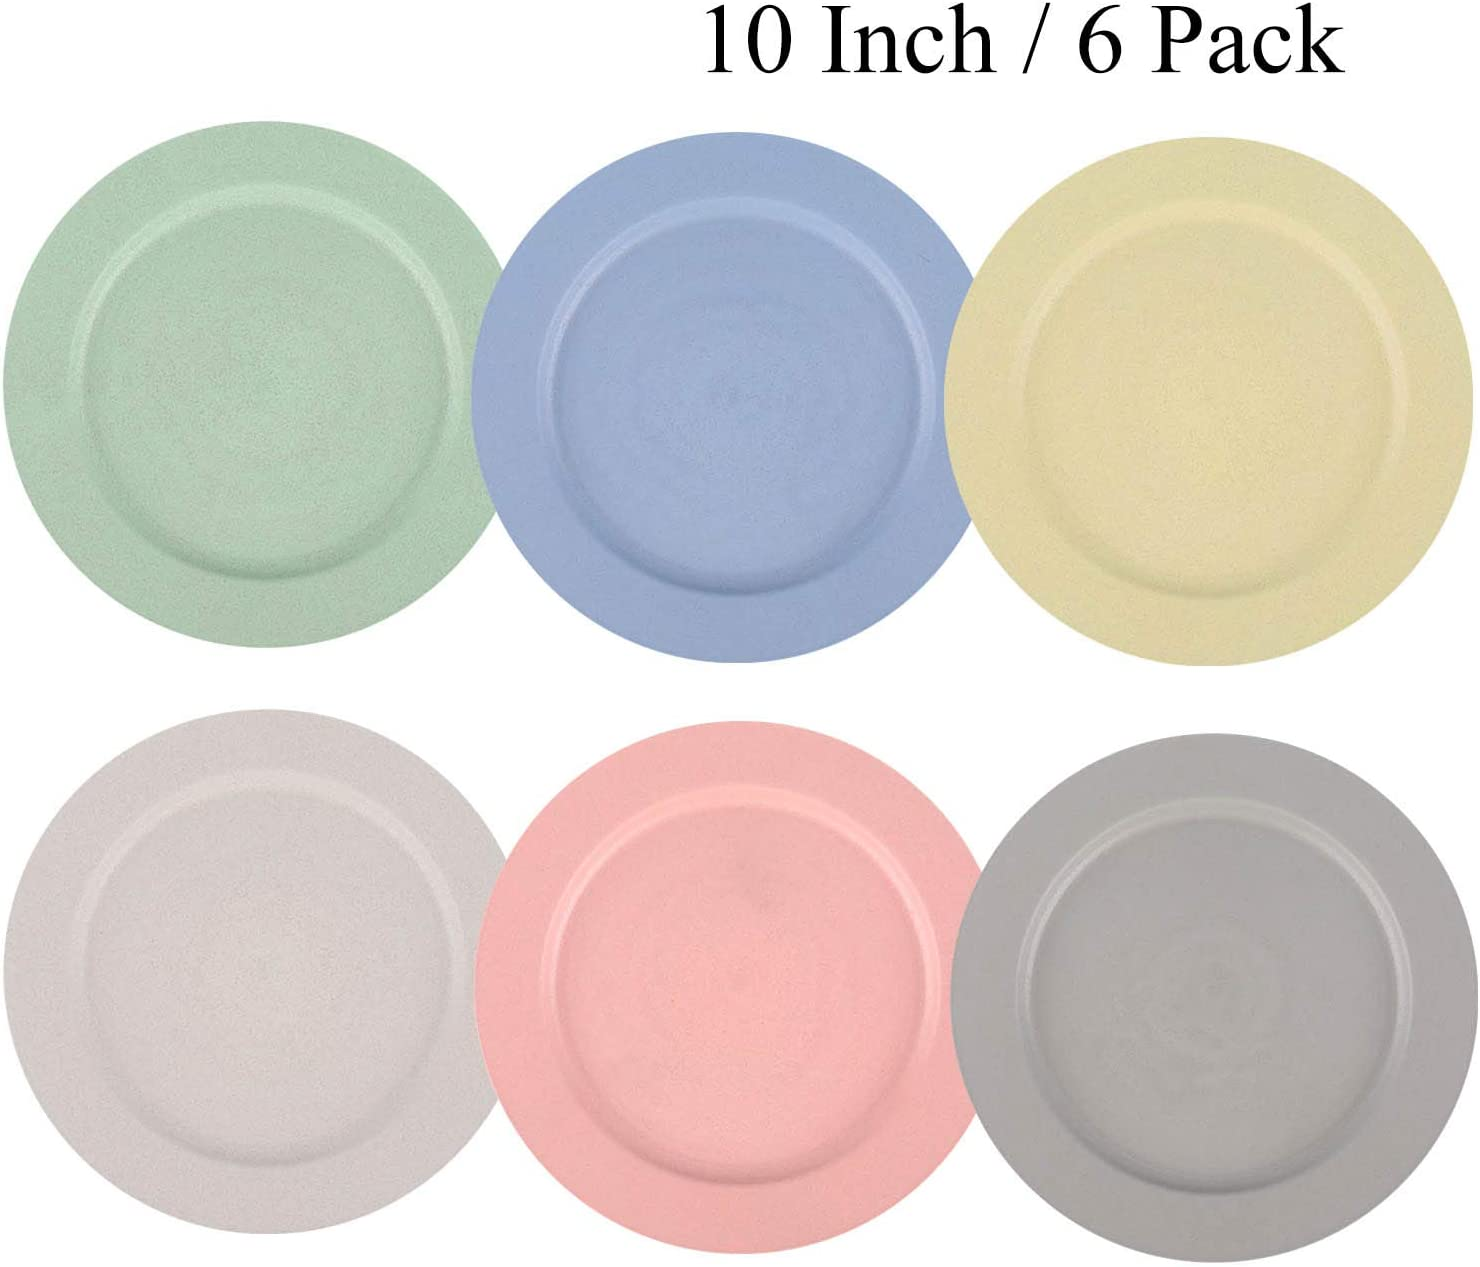 10 Inch Wheat Straw Plates - Reusable & Unbreakable Plate Set of 6 - Dishwasher & Microwave Safe - Perfect for Dinner Dishes - Healthy for Kids & Adult, Lightweight, BPA Free & Eco-Friendly (6 Color)